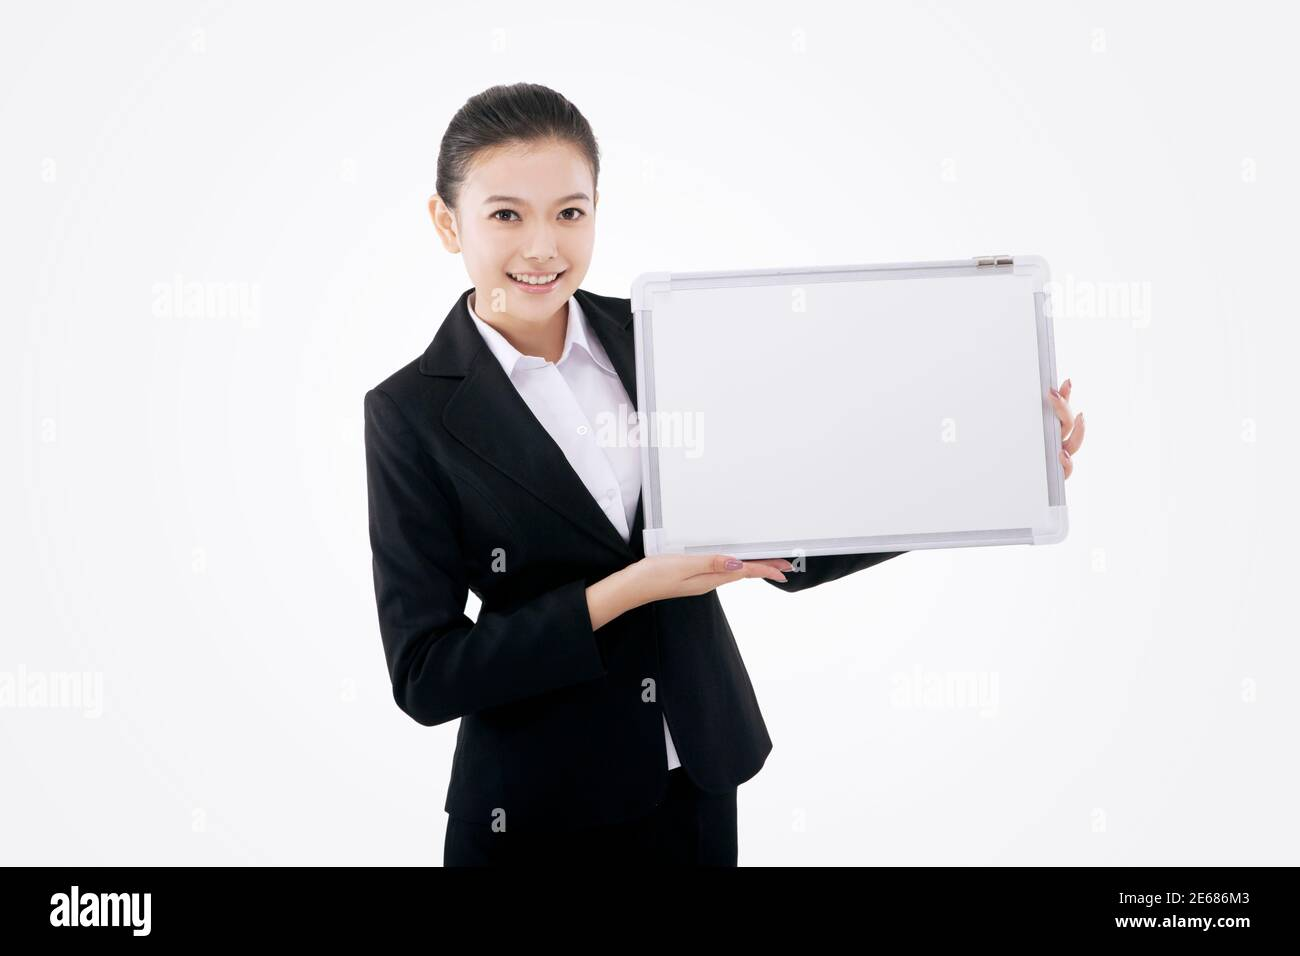 Business lady with white board high quality photo Stock Photo